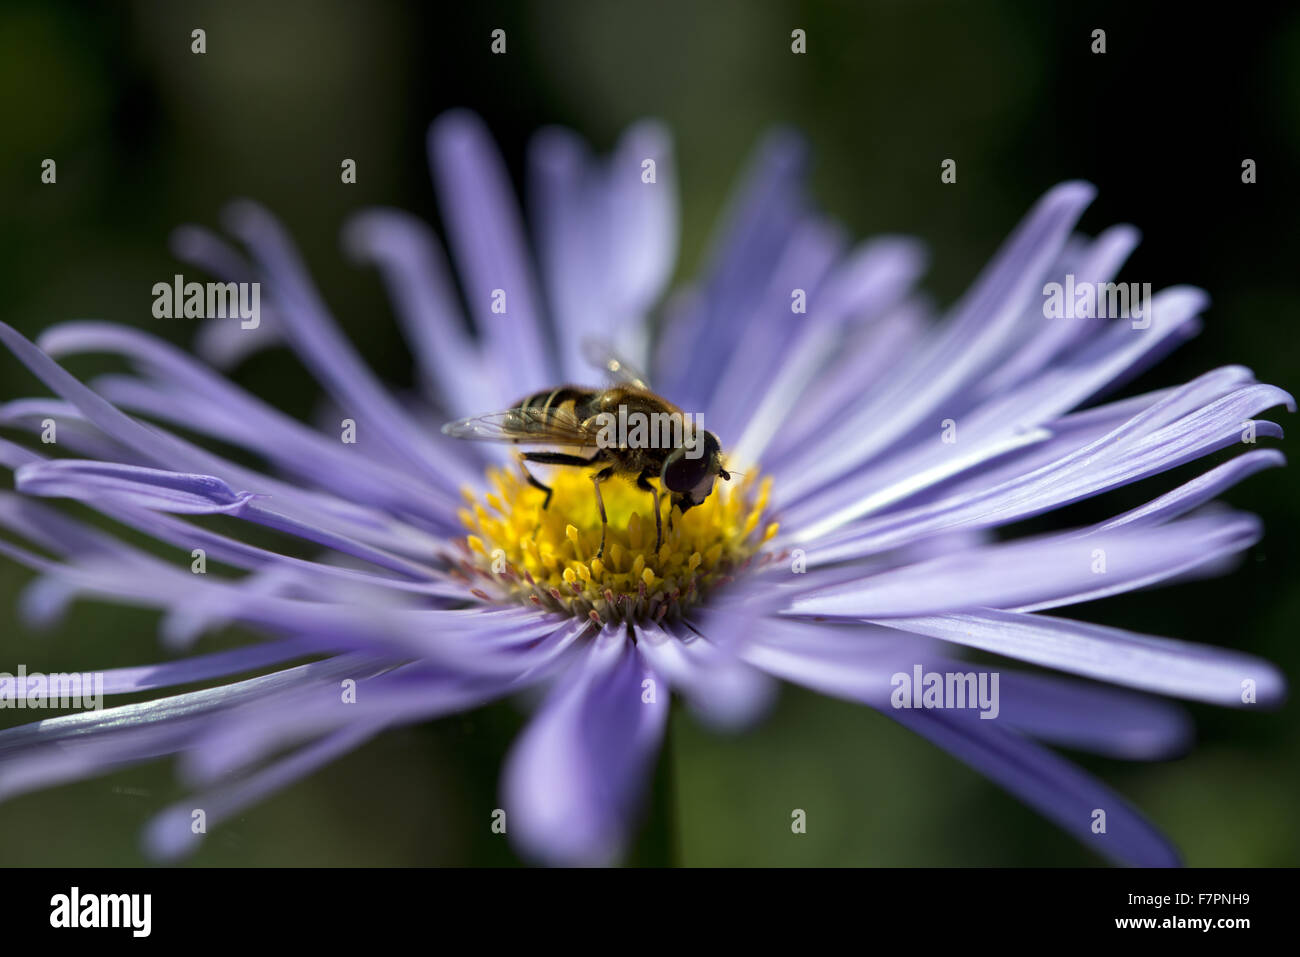 A wasp on a daisy growing in July at Bodnant Garden, Clwyd, Wales. Created by five generations of one family, Bodnant Stock Photo